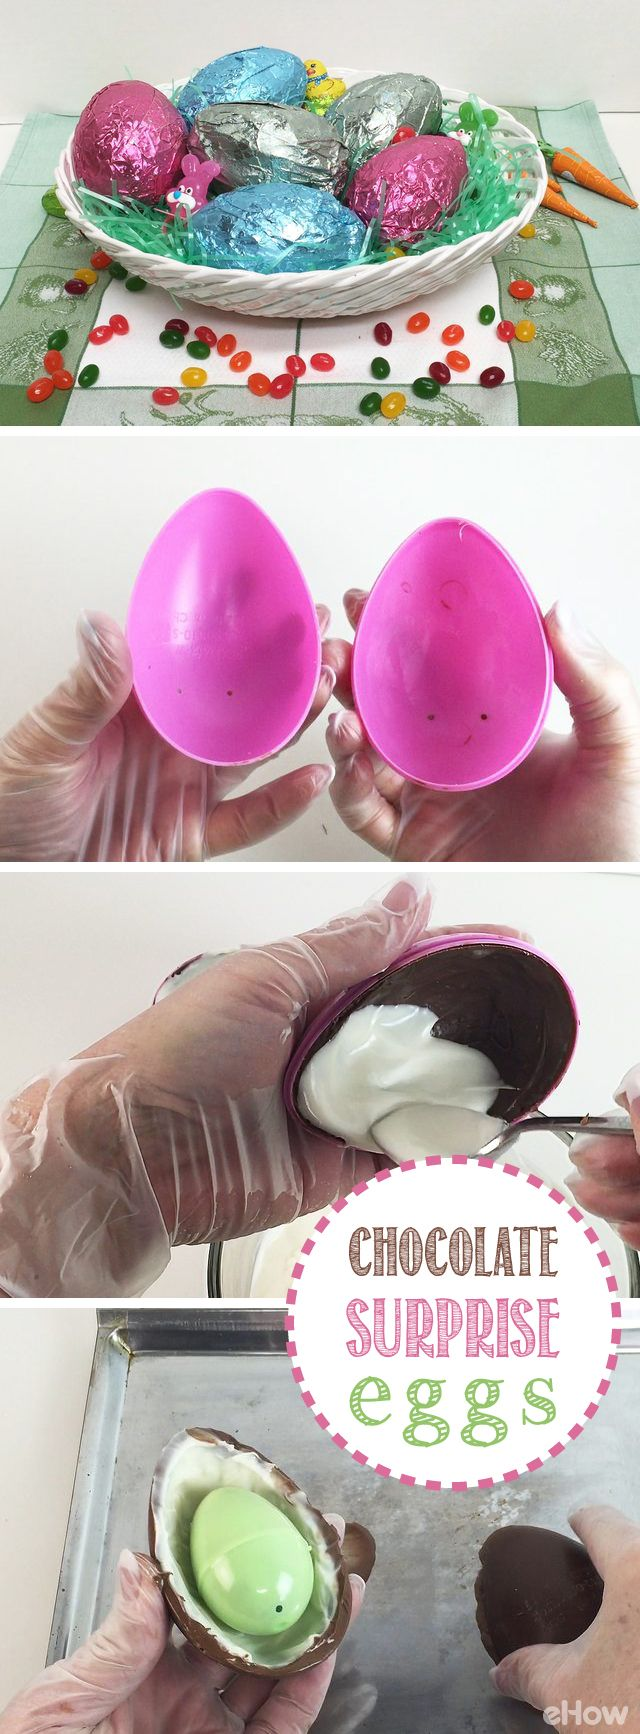 If you live in the US, you  know that Kinder Eggs are not allowed to be sold or brought in. But that doesn't mean you can't DIY a chocolate surprise egg!  All you need is a few plastic egg toys, chocolate and a little candy surprise! Full steps and VIDEO here: http://www.ehow.com/how_2146279_make-chocolate-easter-eggs.html?utm_source=pinterest.com&utm_medium=referral&utm_content=freestyle&utm_campaign=fanpage